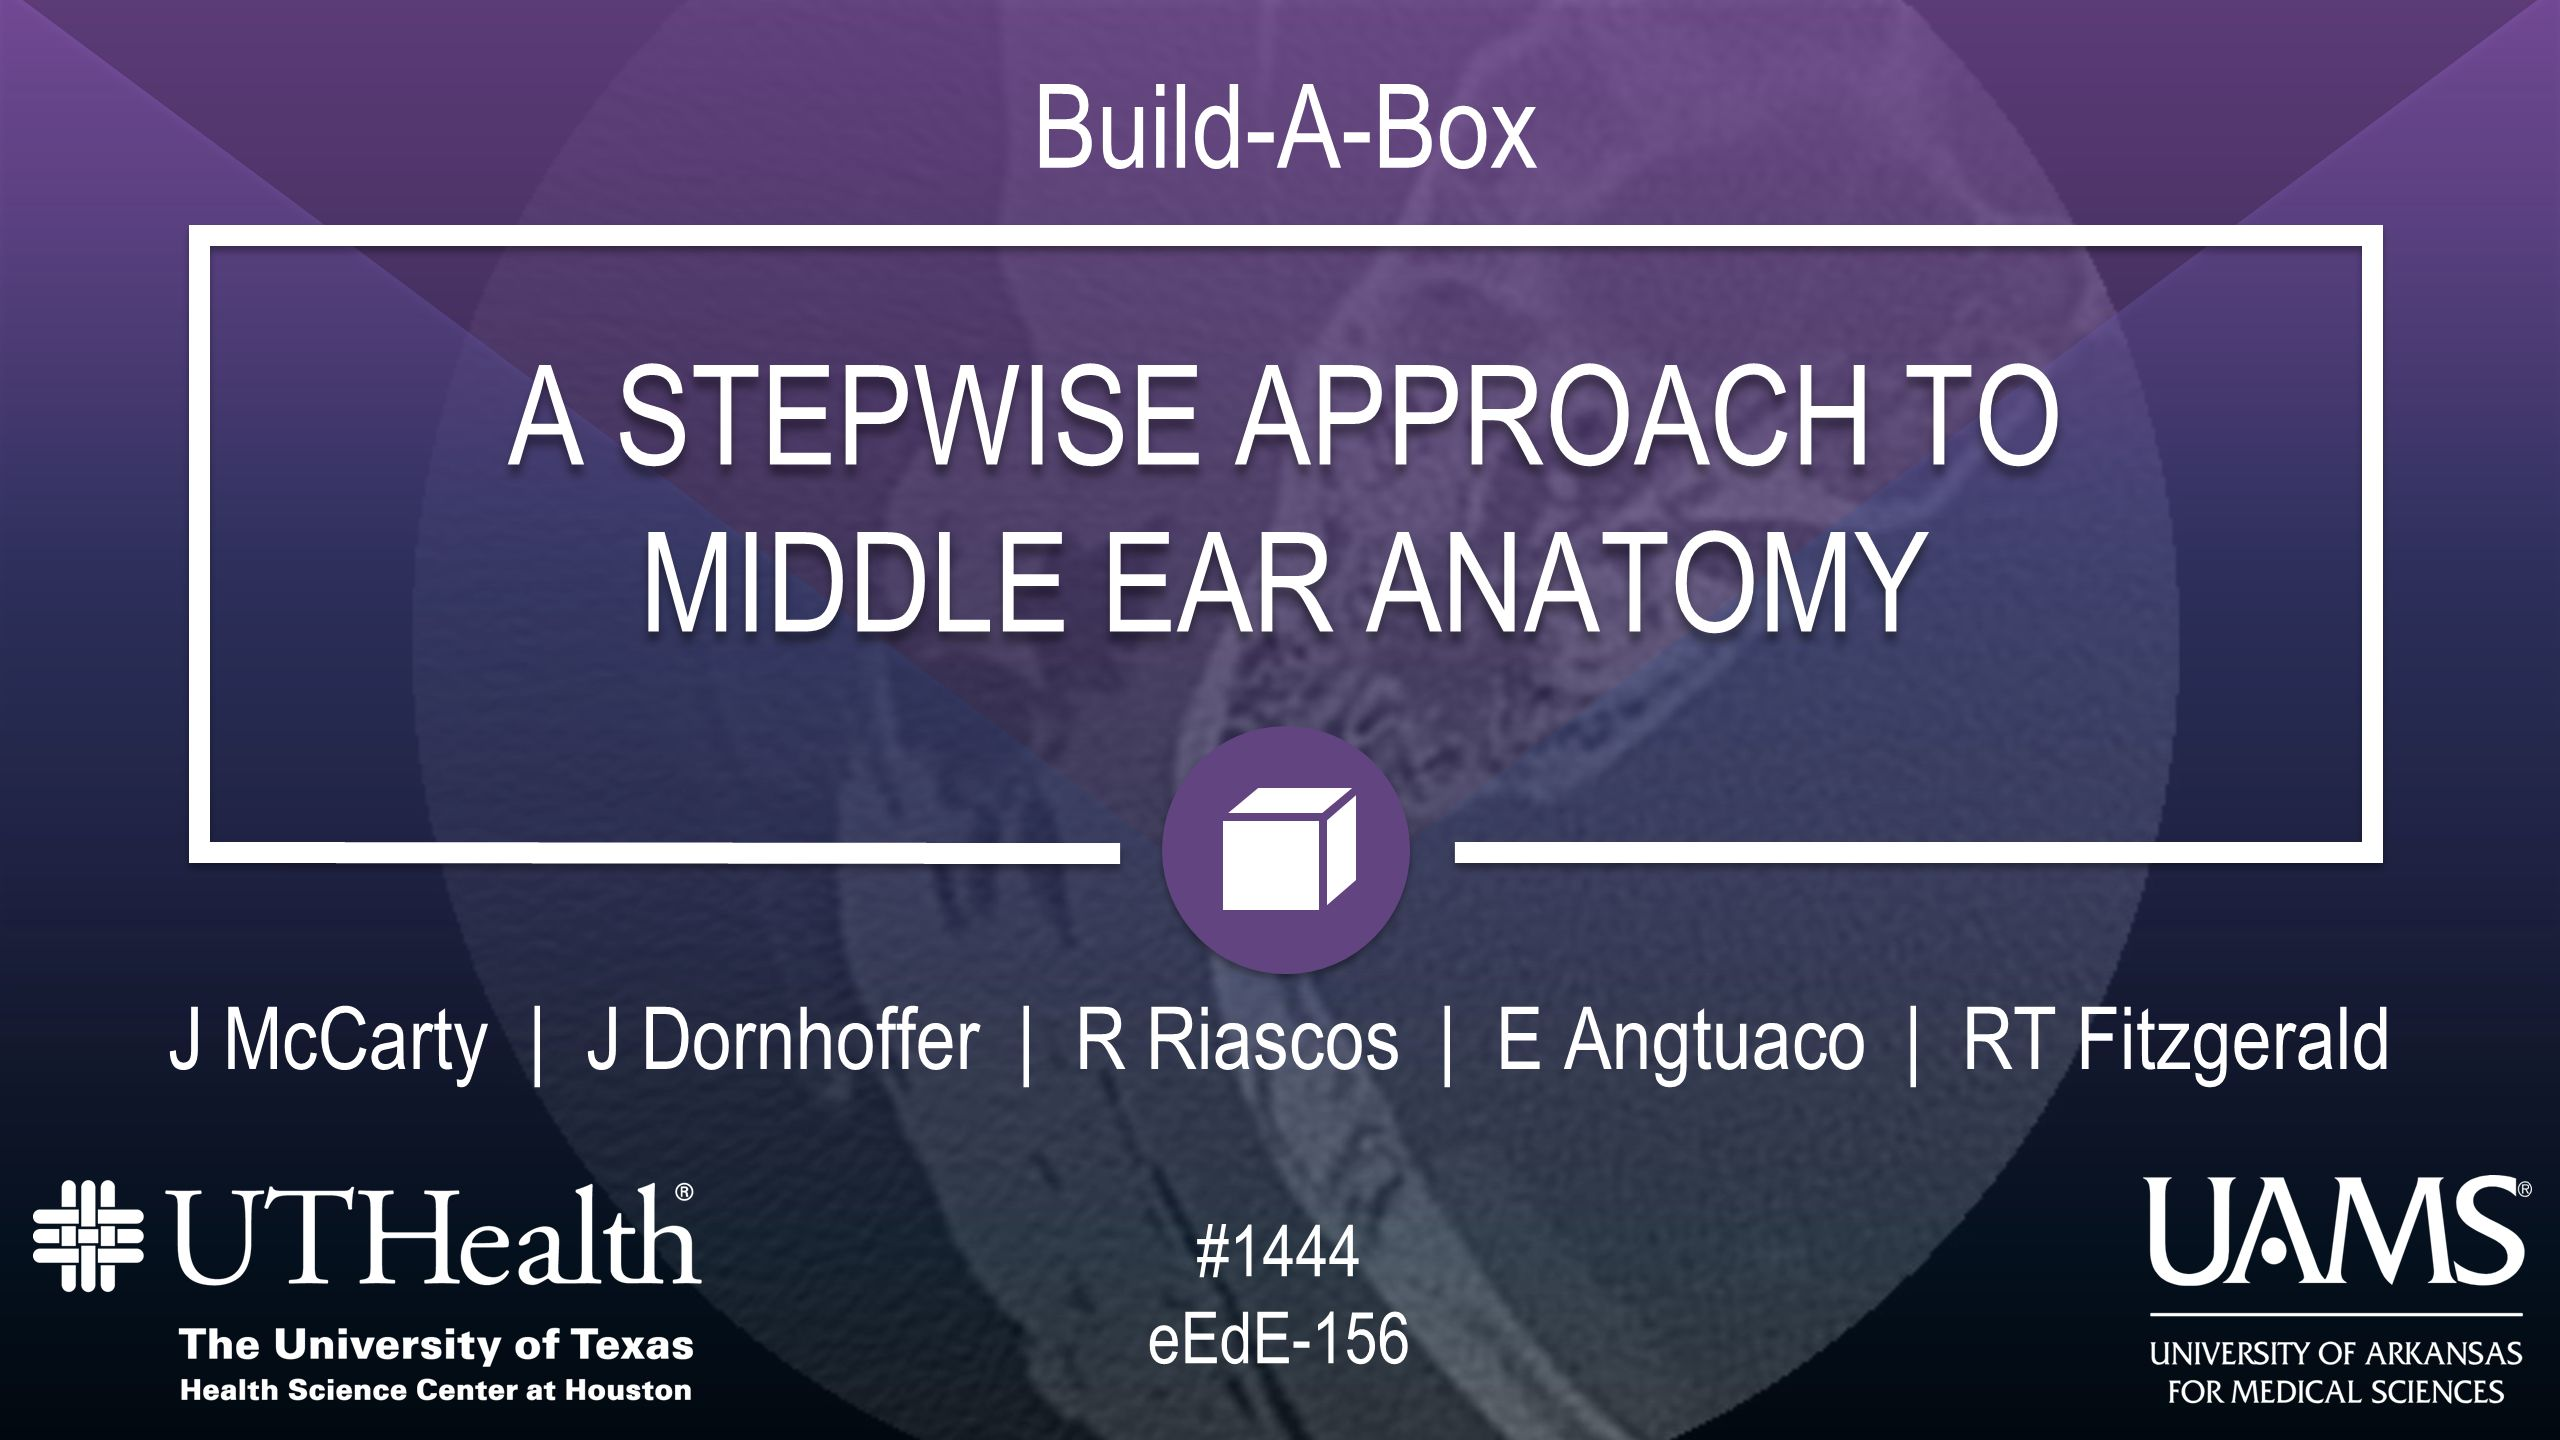 A STEPWISE APPROACH TO MIDDLE EAR ANATOMY A STEPWISE APPROACH TO ...